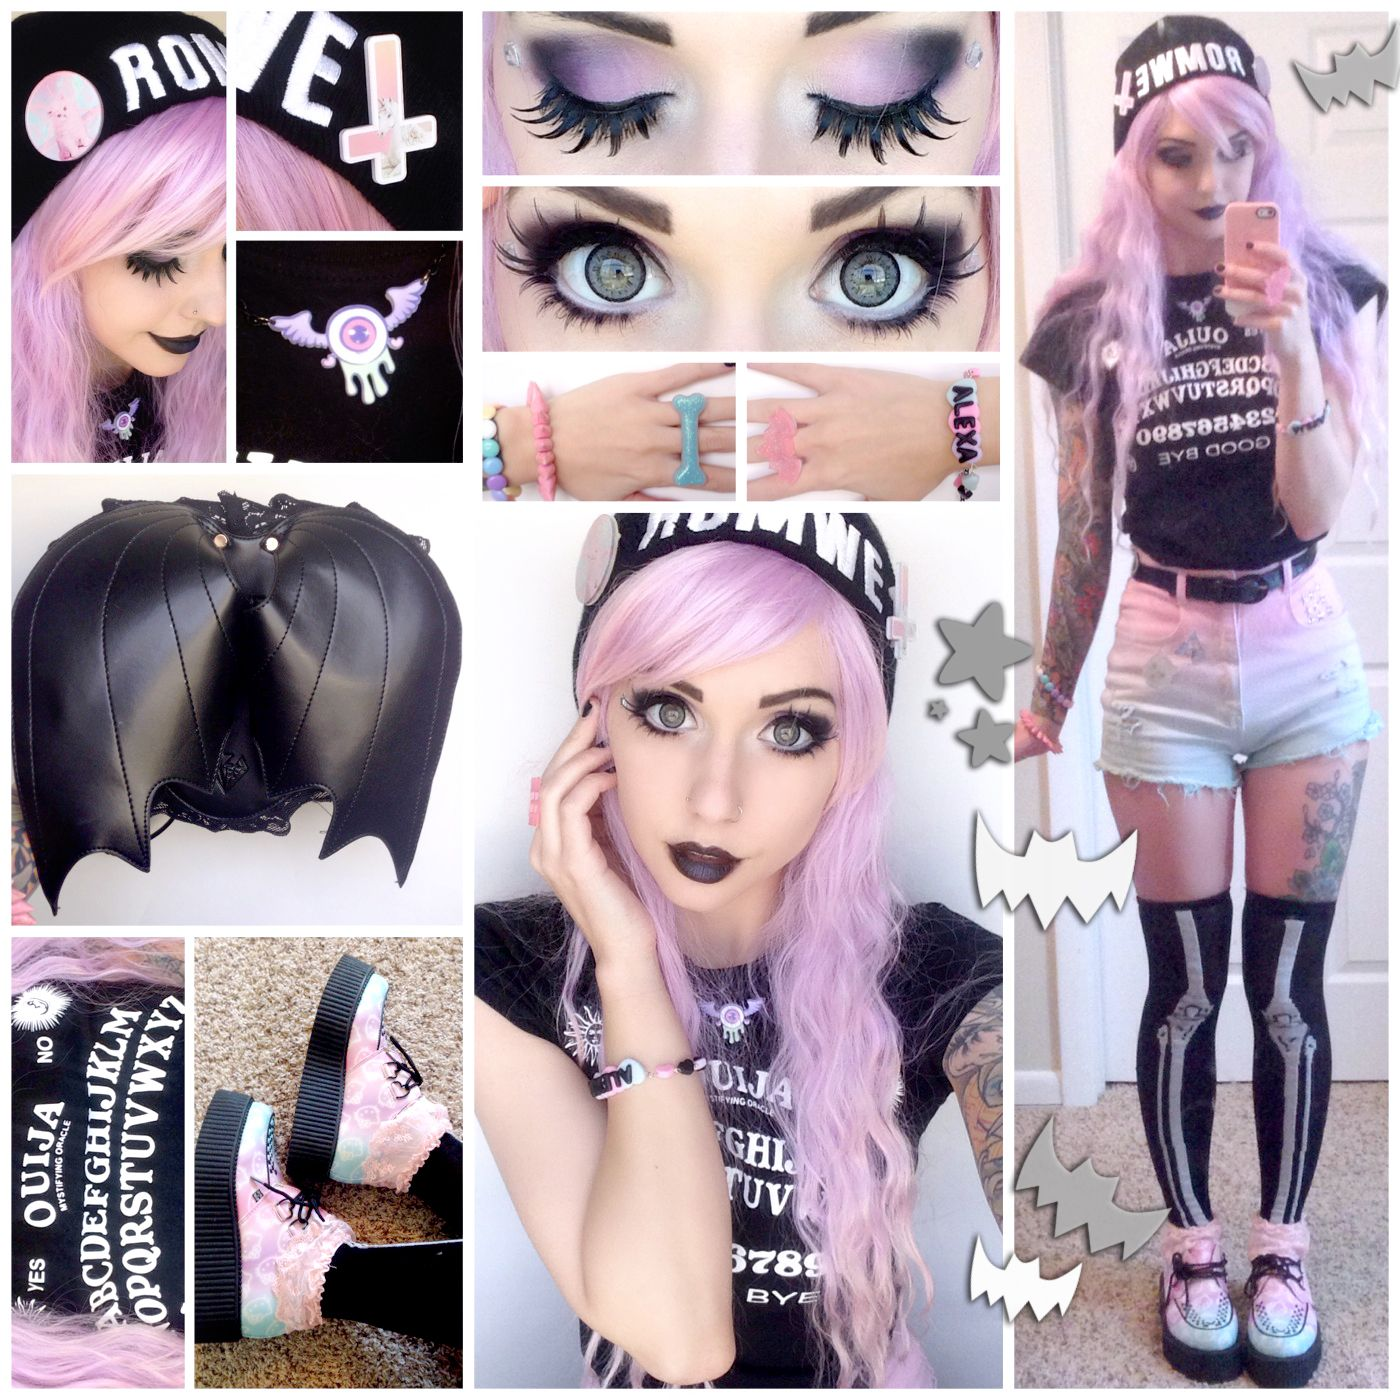 1000 ideas about pastel goth makeup on pinterest nu goth makeup - Pink Pastel Goth Shop For Pink Pastel Goth On Wheretoget I Love Alexa Poletti